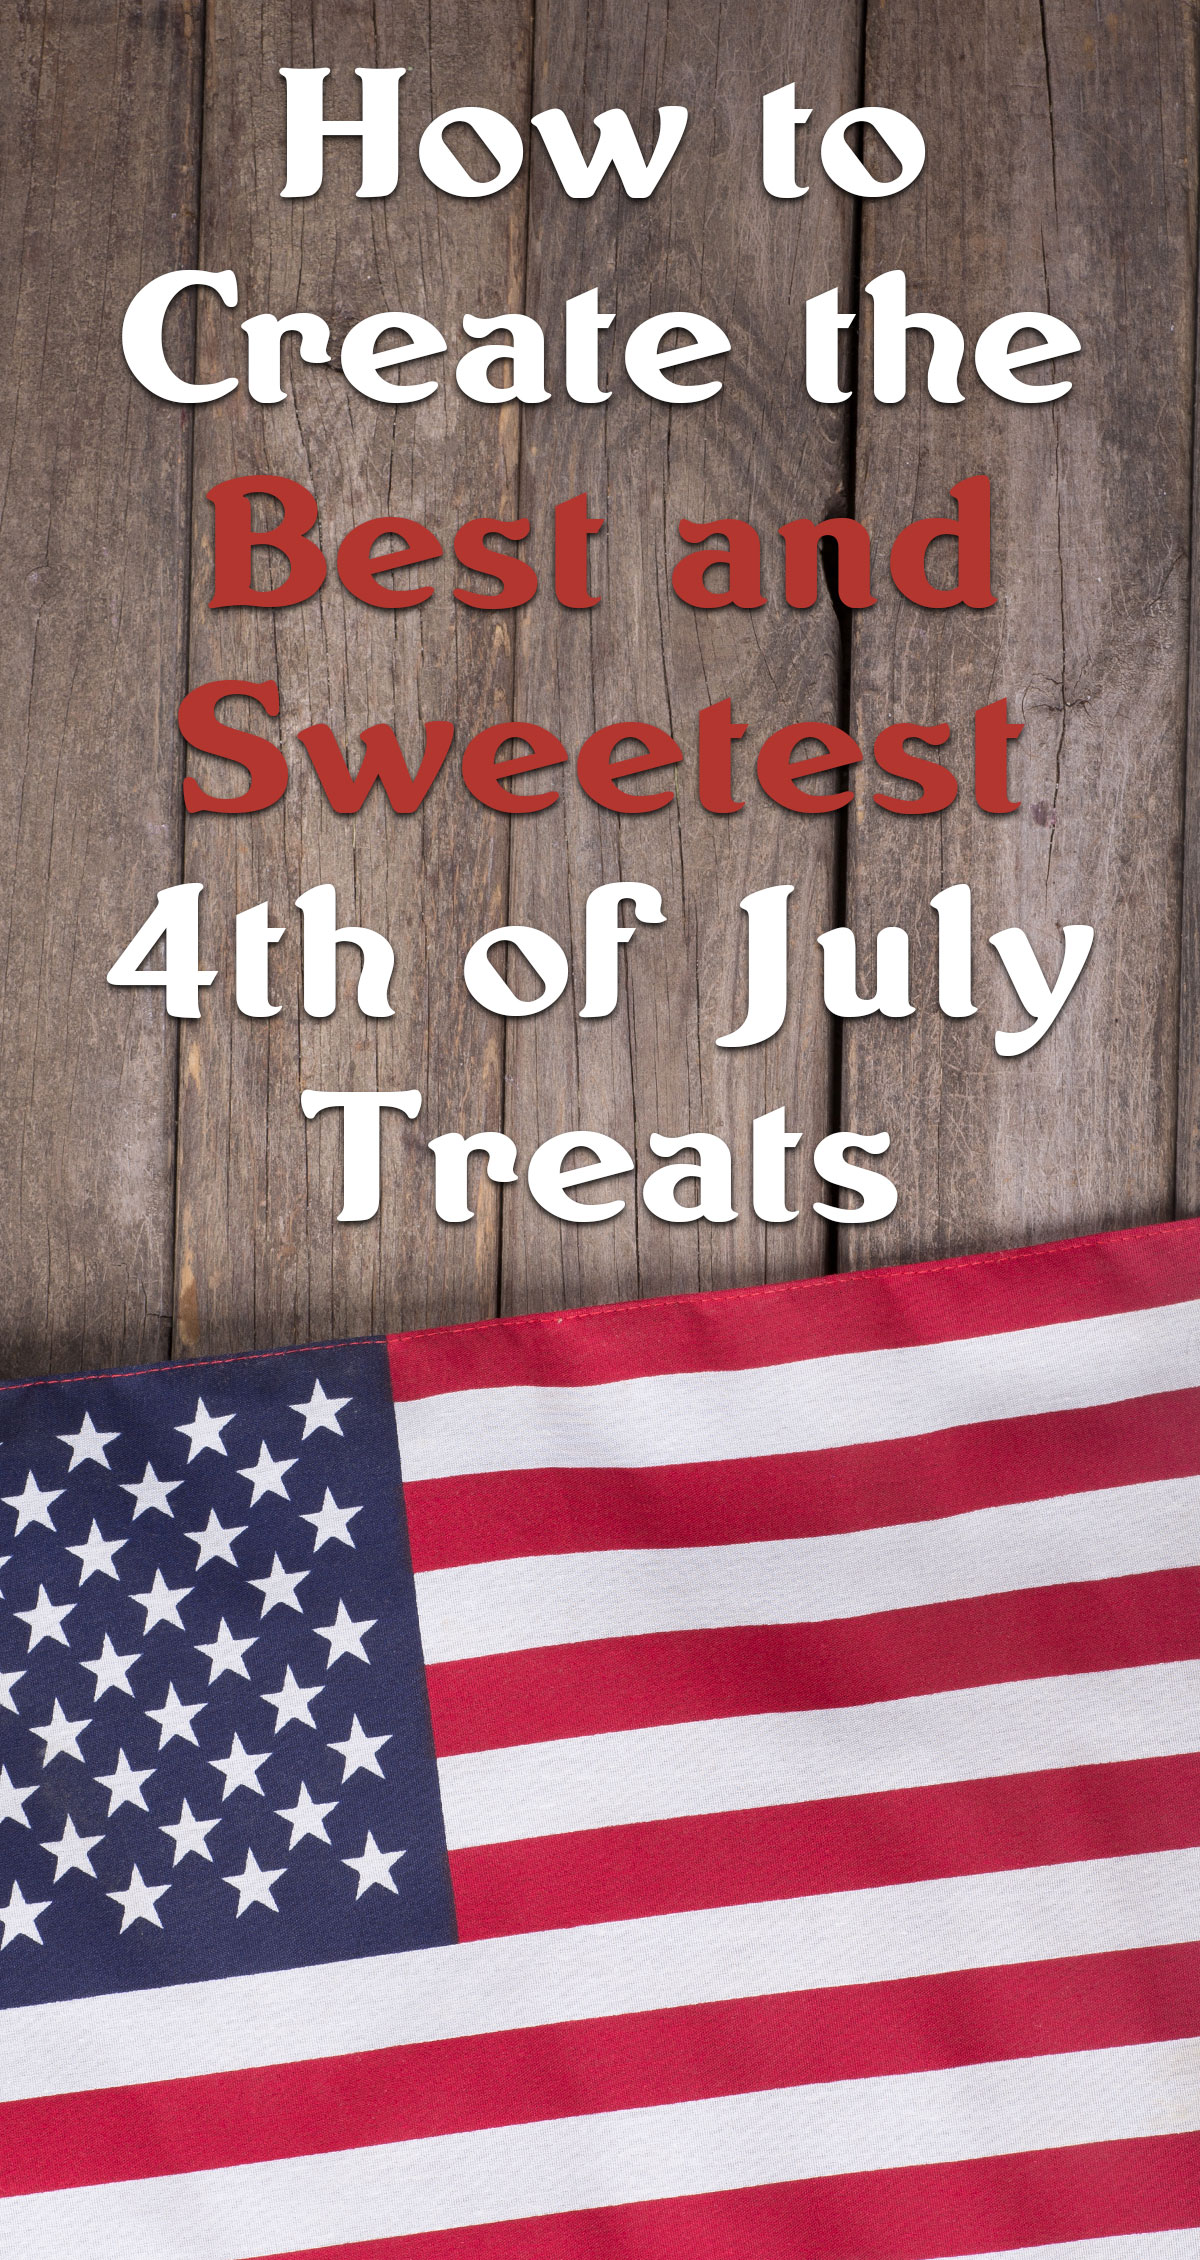 How to Create the Best and Sweetest 4th of July Treats Pin